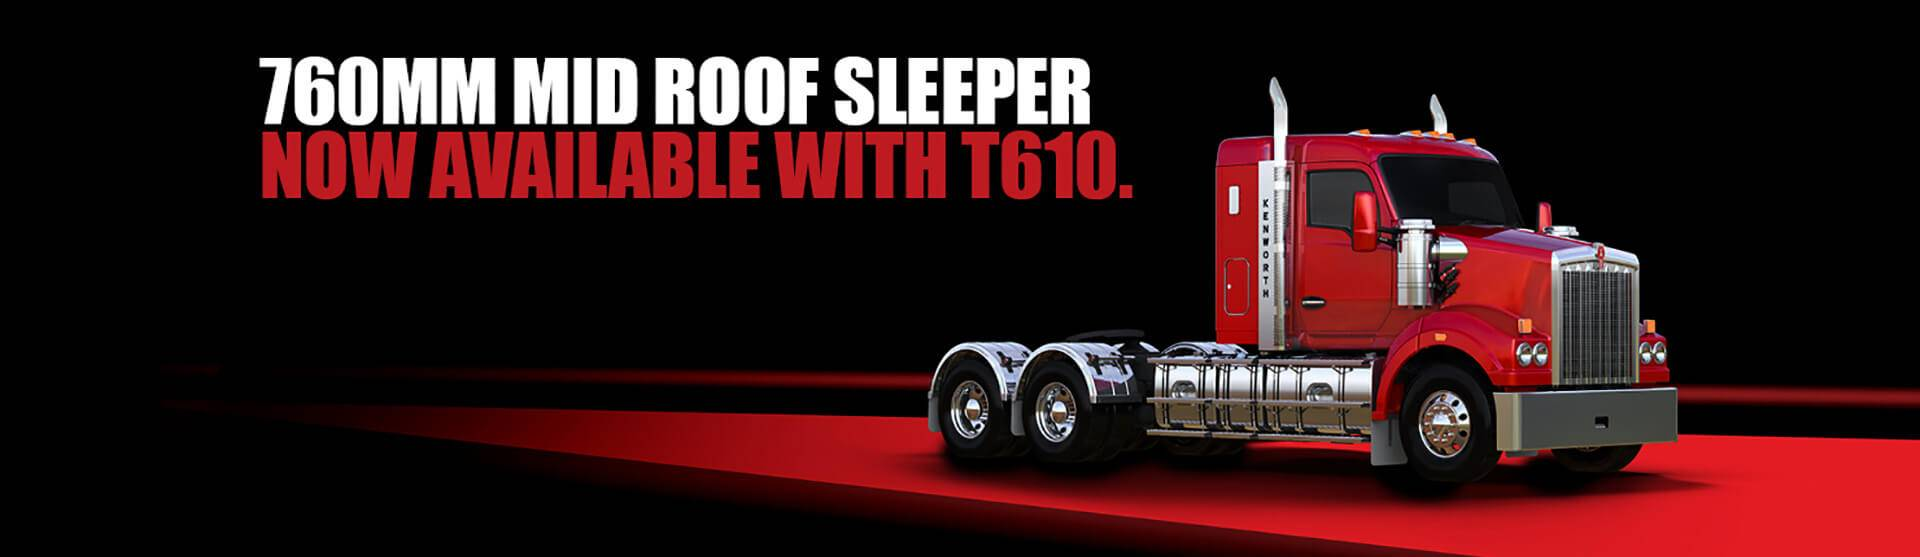 Kenworth T610 - 760mm Mid Roof Sleeper